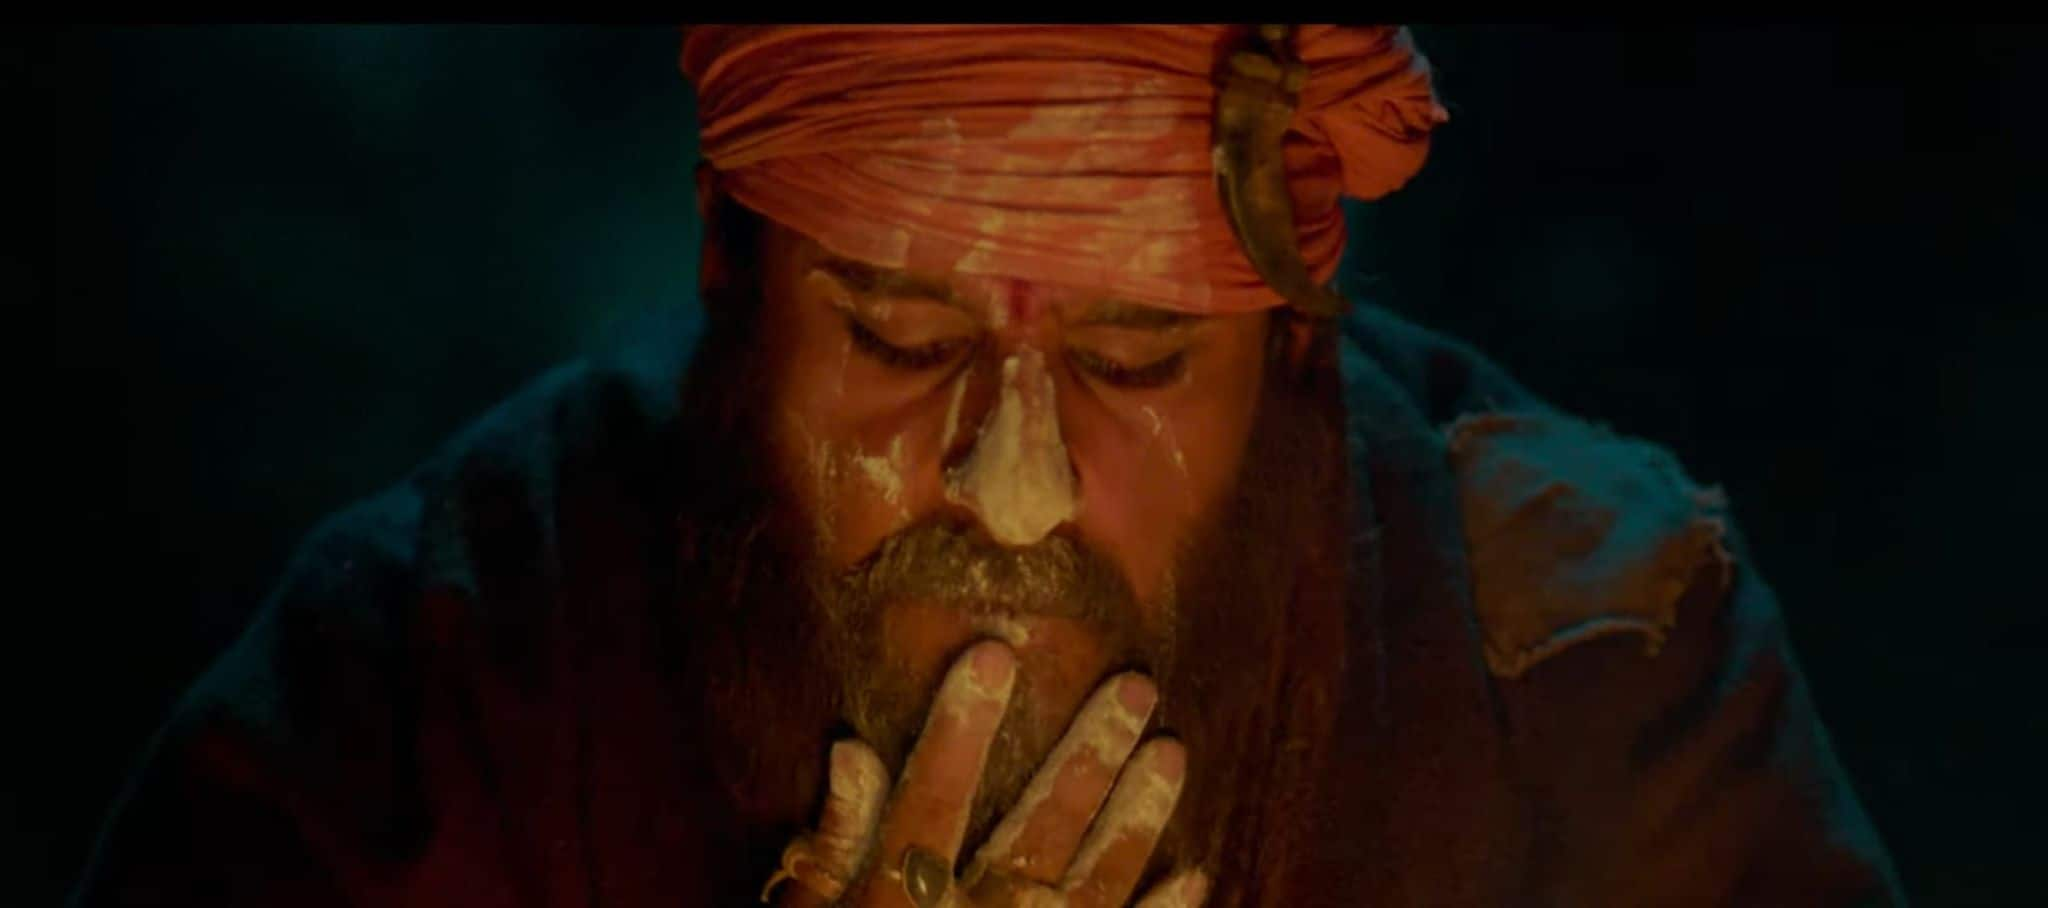 Laal Kaptaan Trailer: Saif Ali Khan's Grim Look And Blood Thirsty Avatar Could Give You Nightmares!